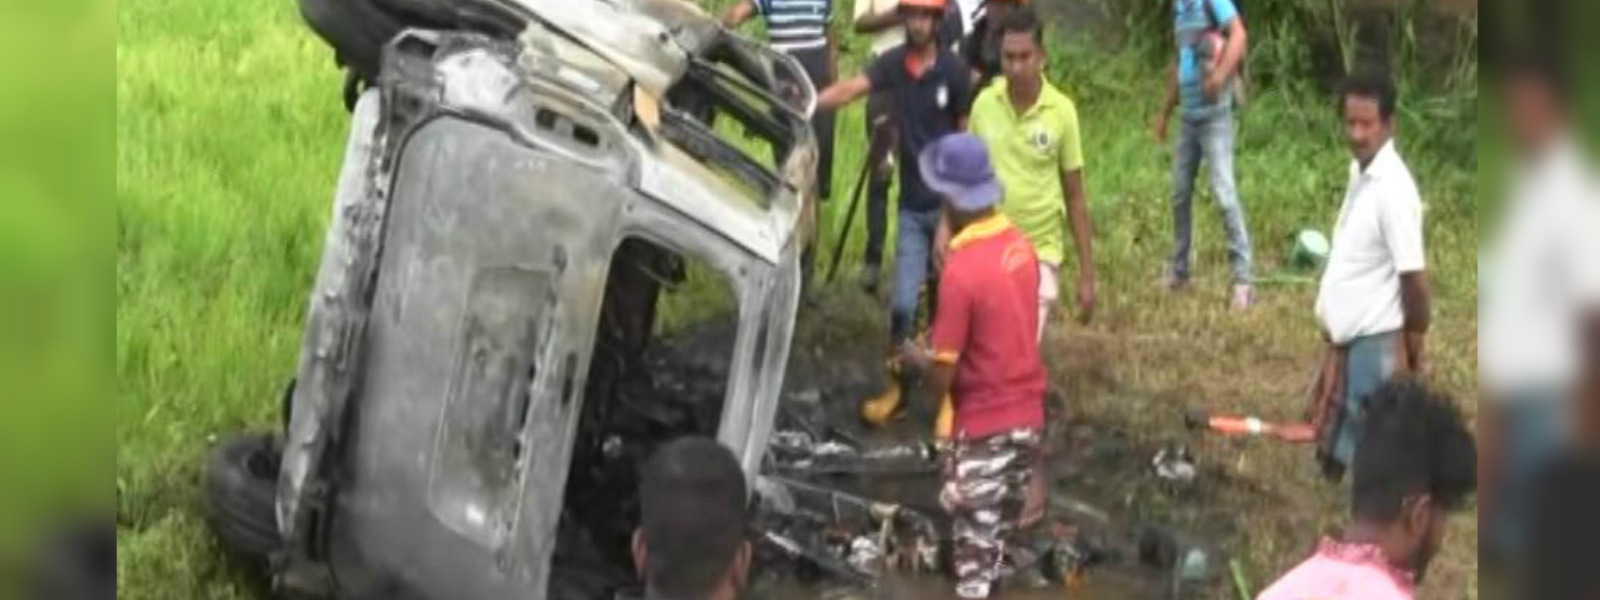 Van destroyed in a fire following an accident